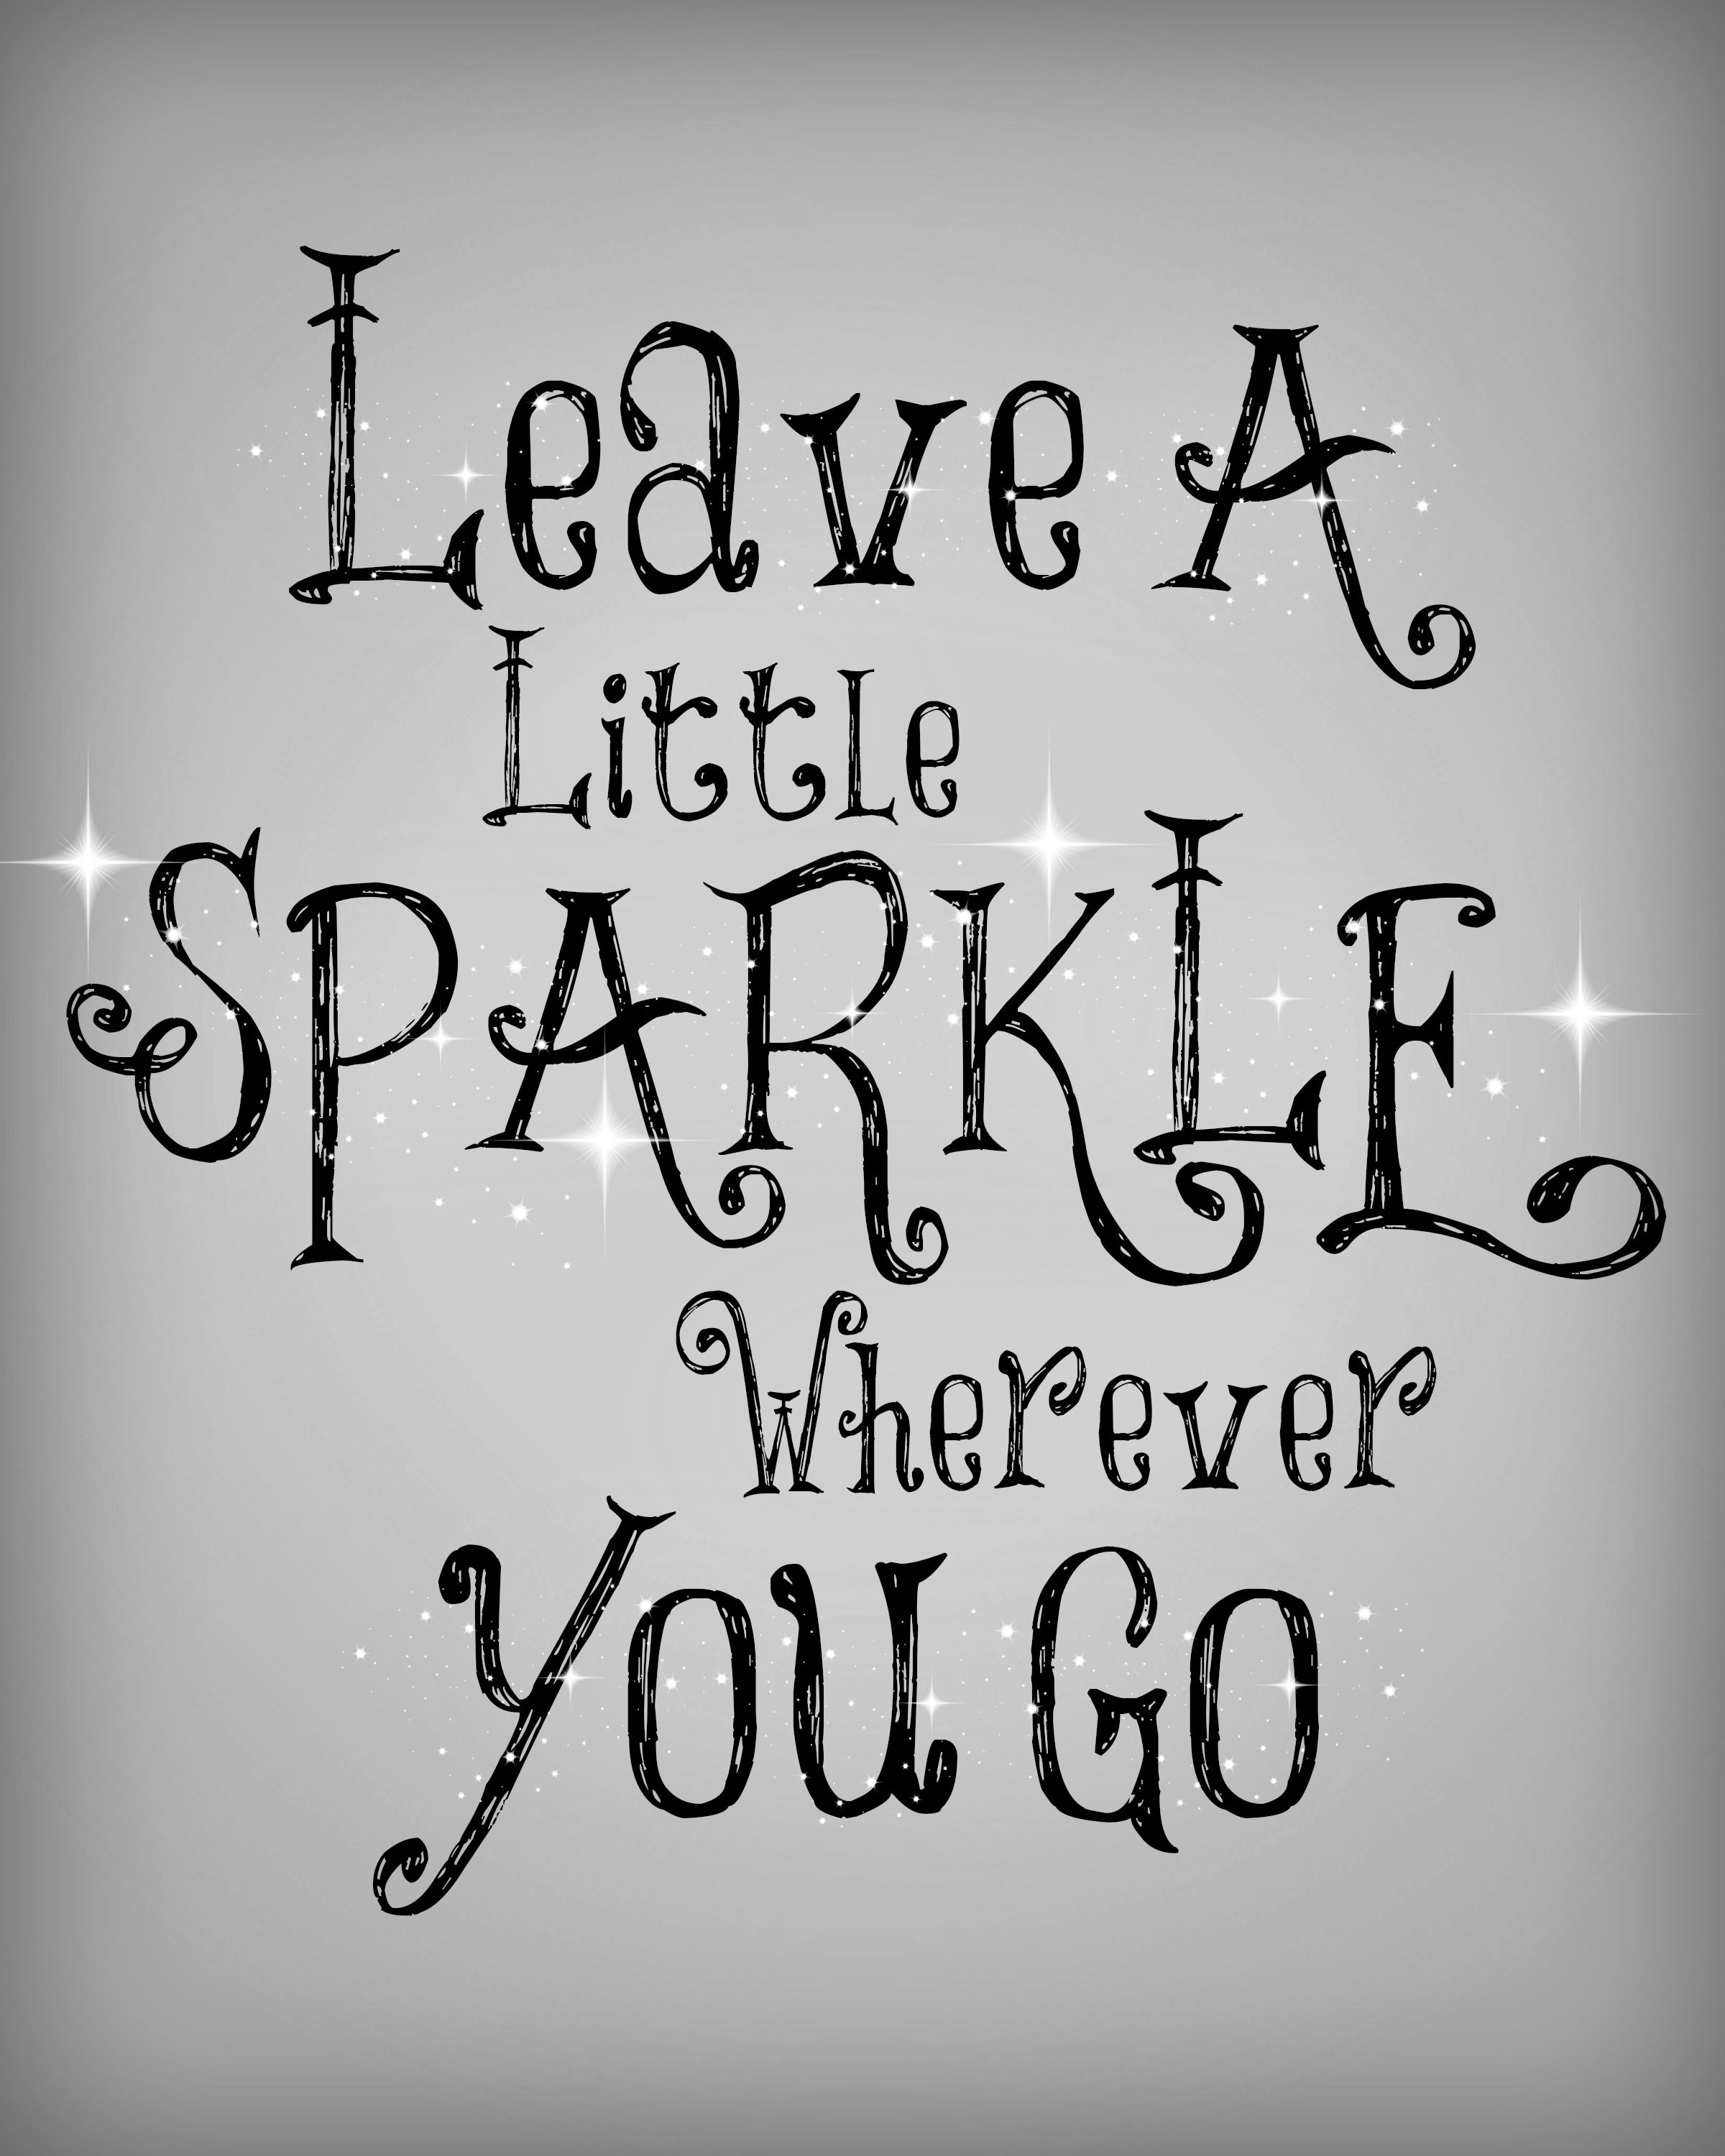 Leave a little sparkle wherever you go. / What unique